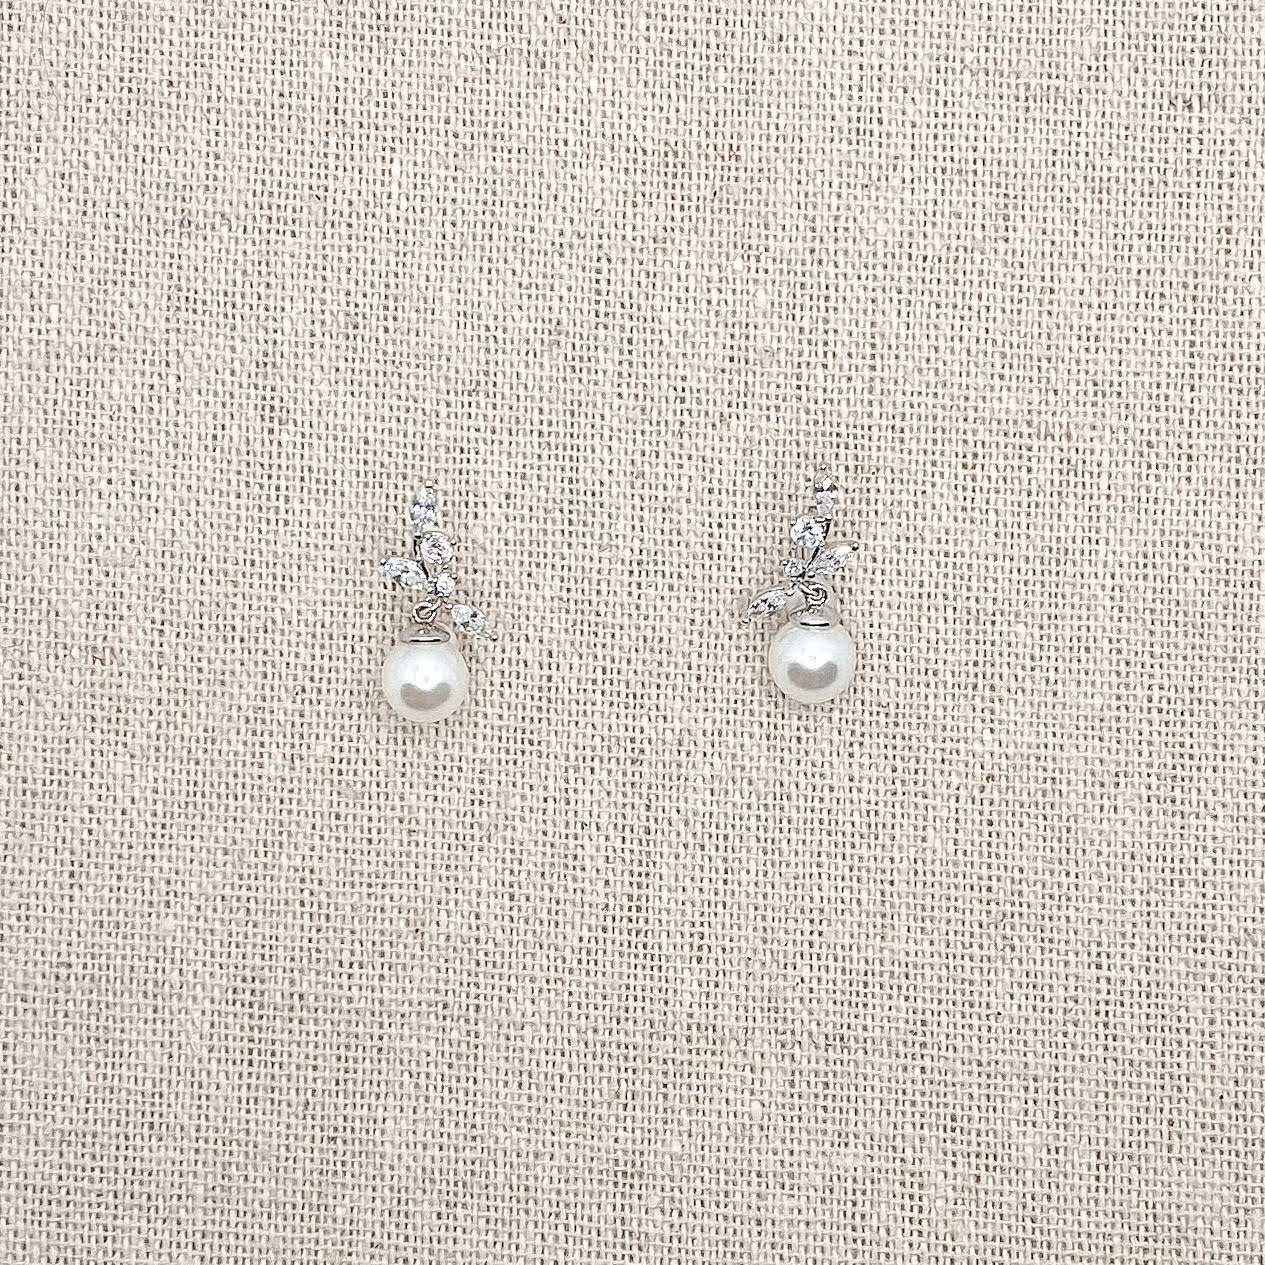 Laverna Silver Earrings